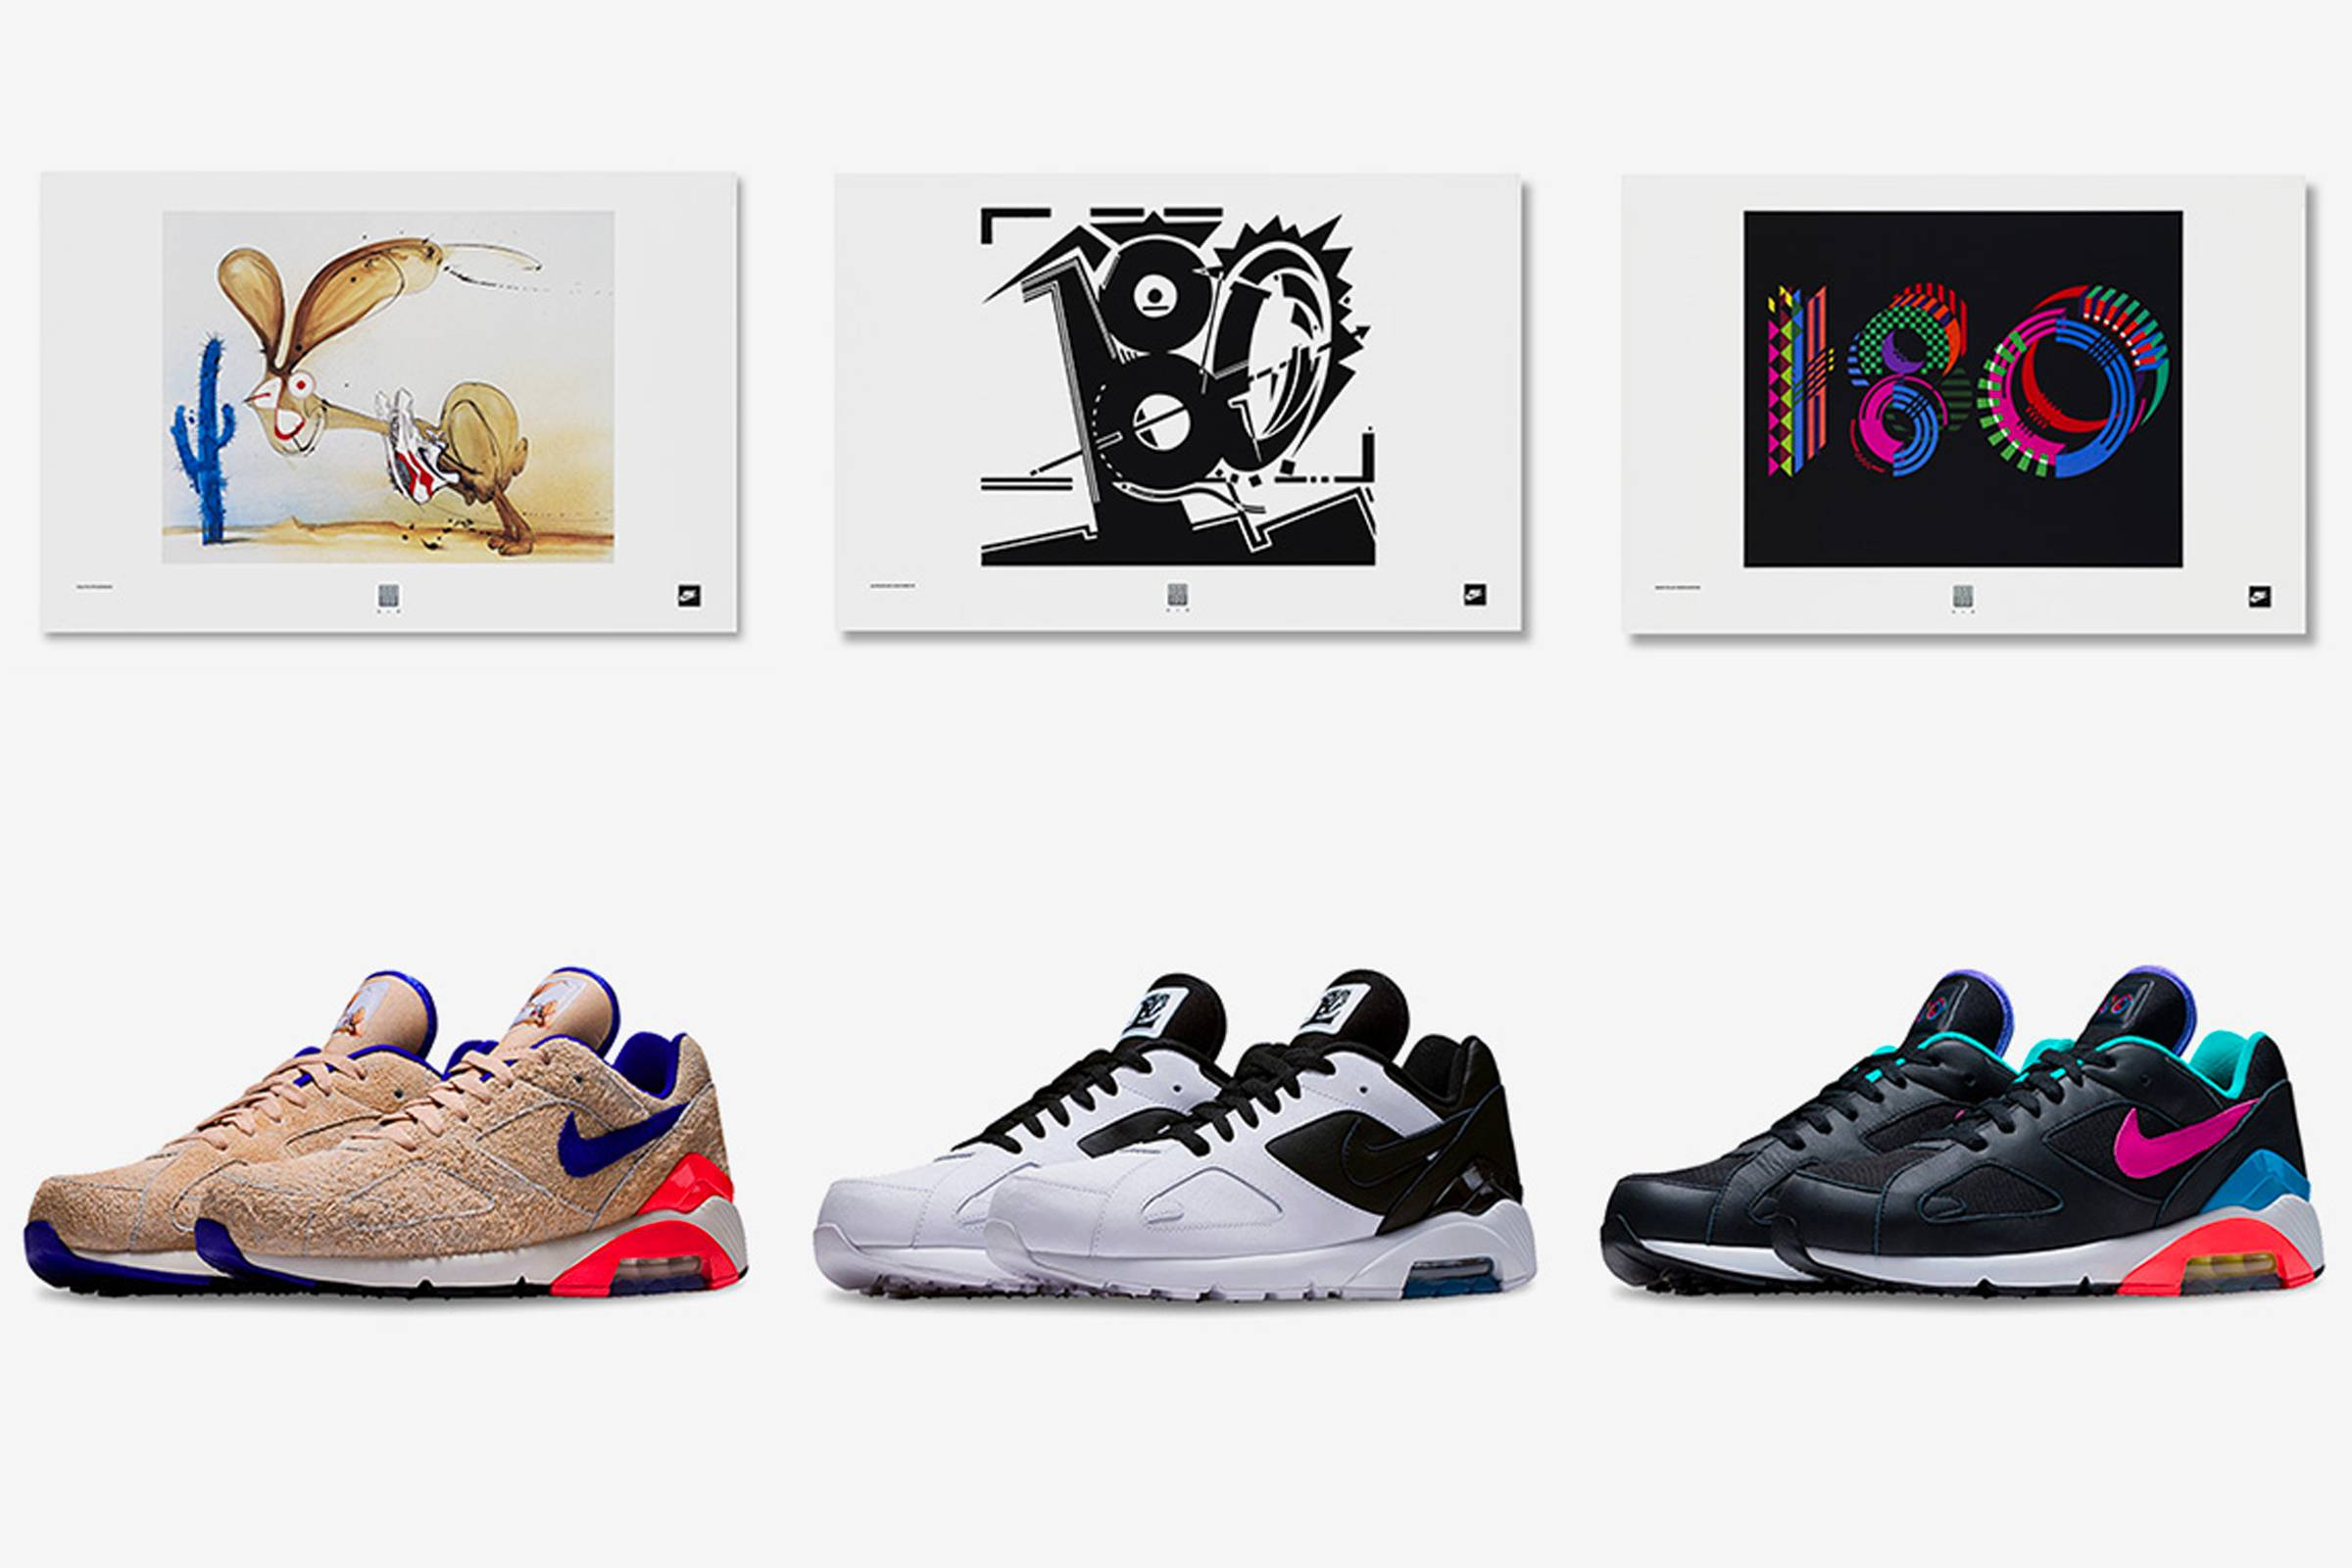 hot sale online 2ee0c 60de0 2018 Nike By You Air Max 180 releases inspired by ad artwork commissioned  by Nike during the 180 s original release. Artist inspiration from left to  right  ...